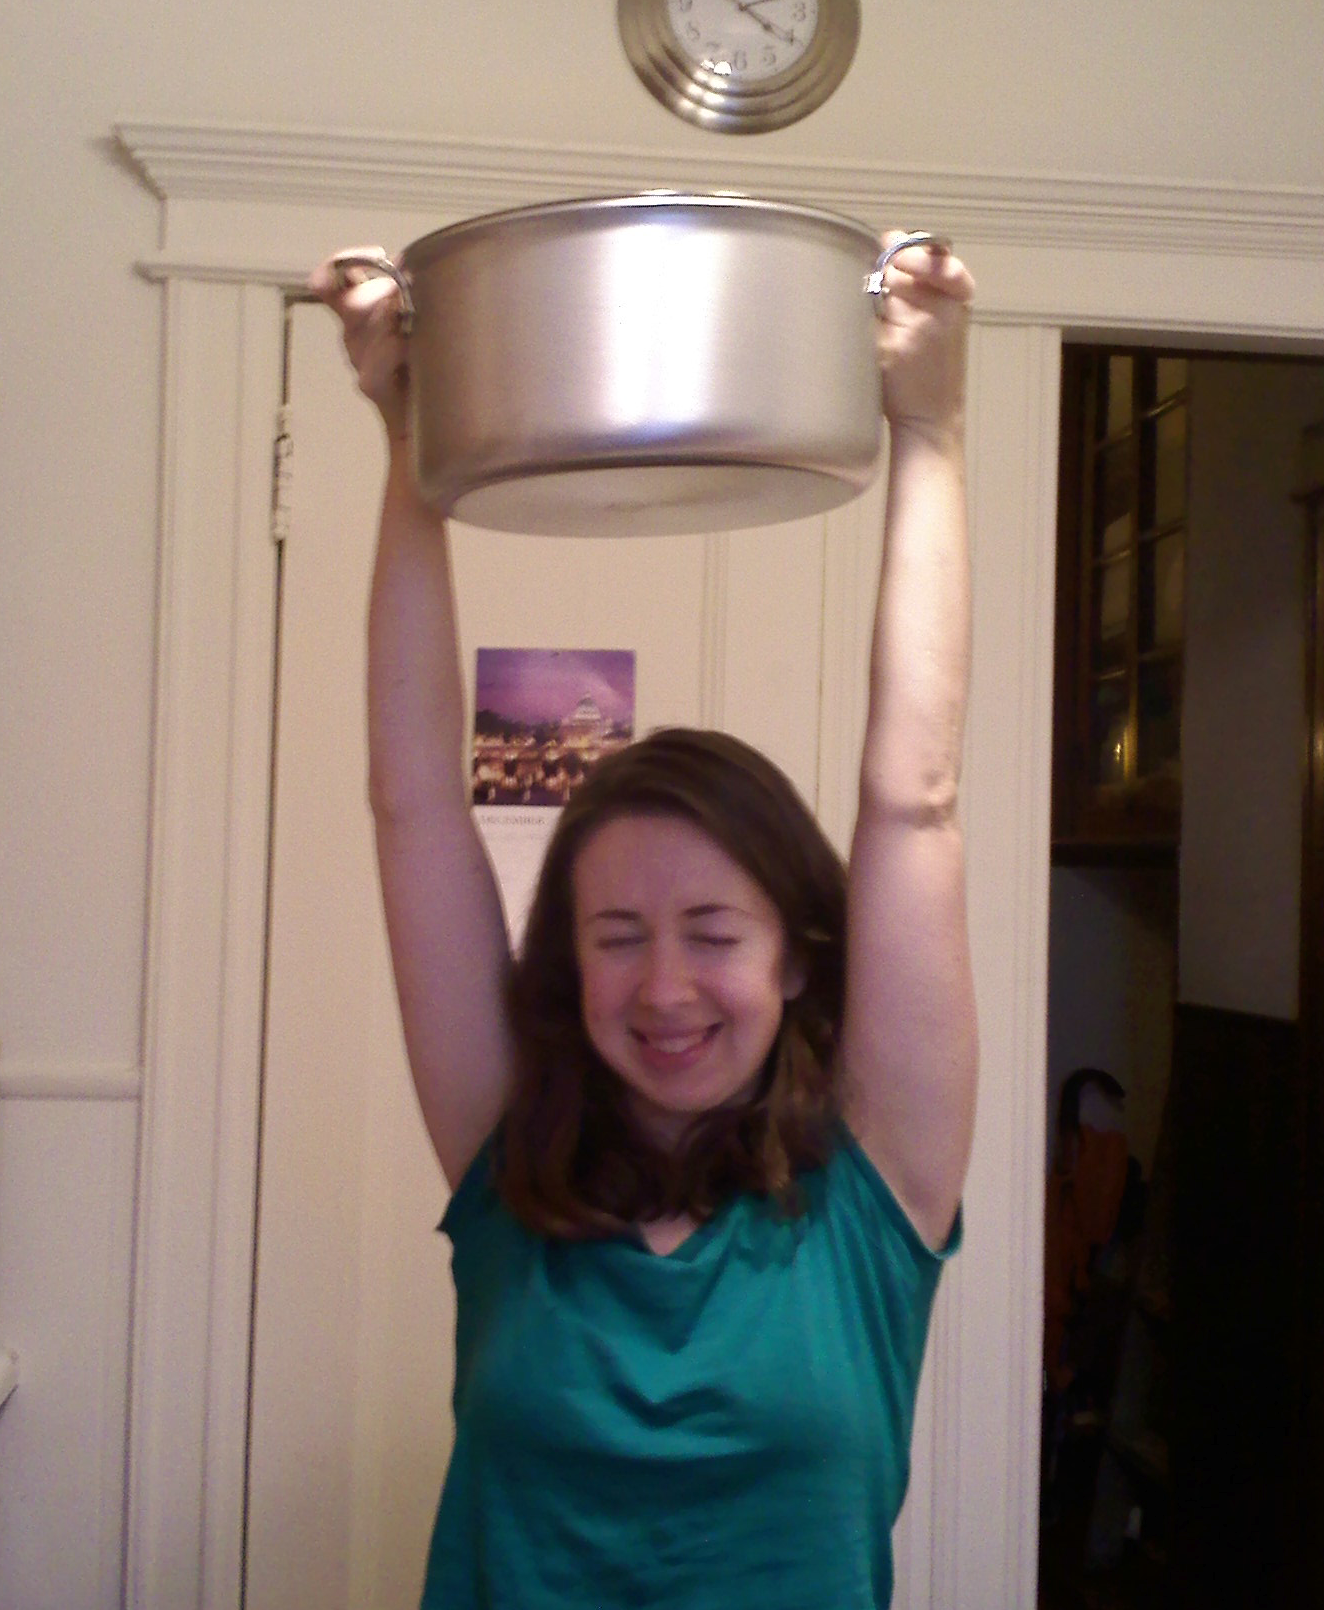 """Me with my first """"real"""" stock pot, an All-Clad stainless steel floor model that Hugo got at Macy's for a steal...this was taken on New Year's Eve 2009. This is a photo of a person who loves making broth, and beautiful cookware! :-)"""